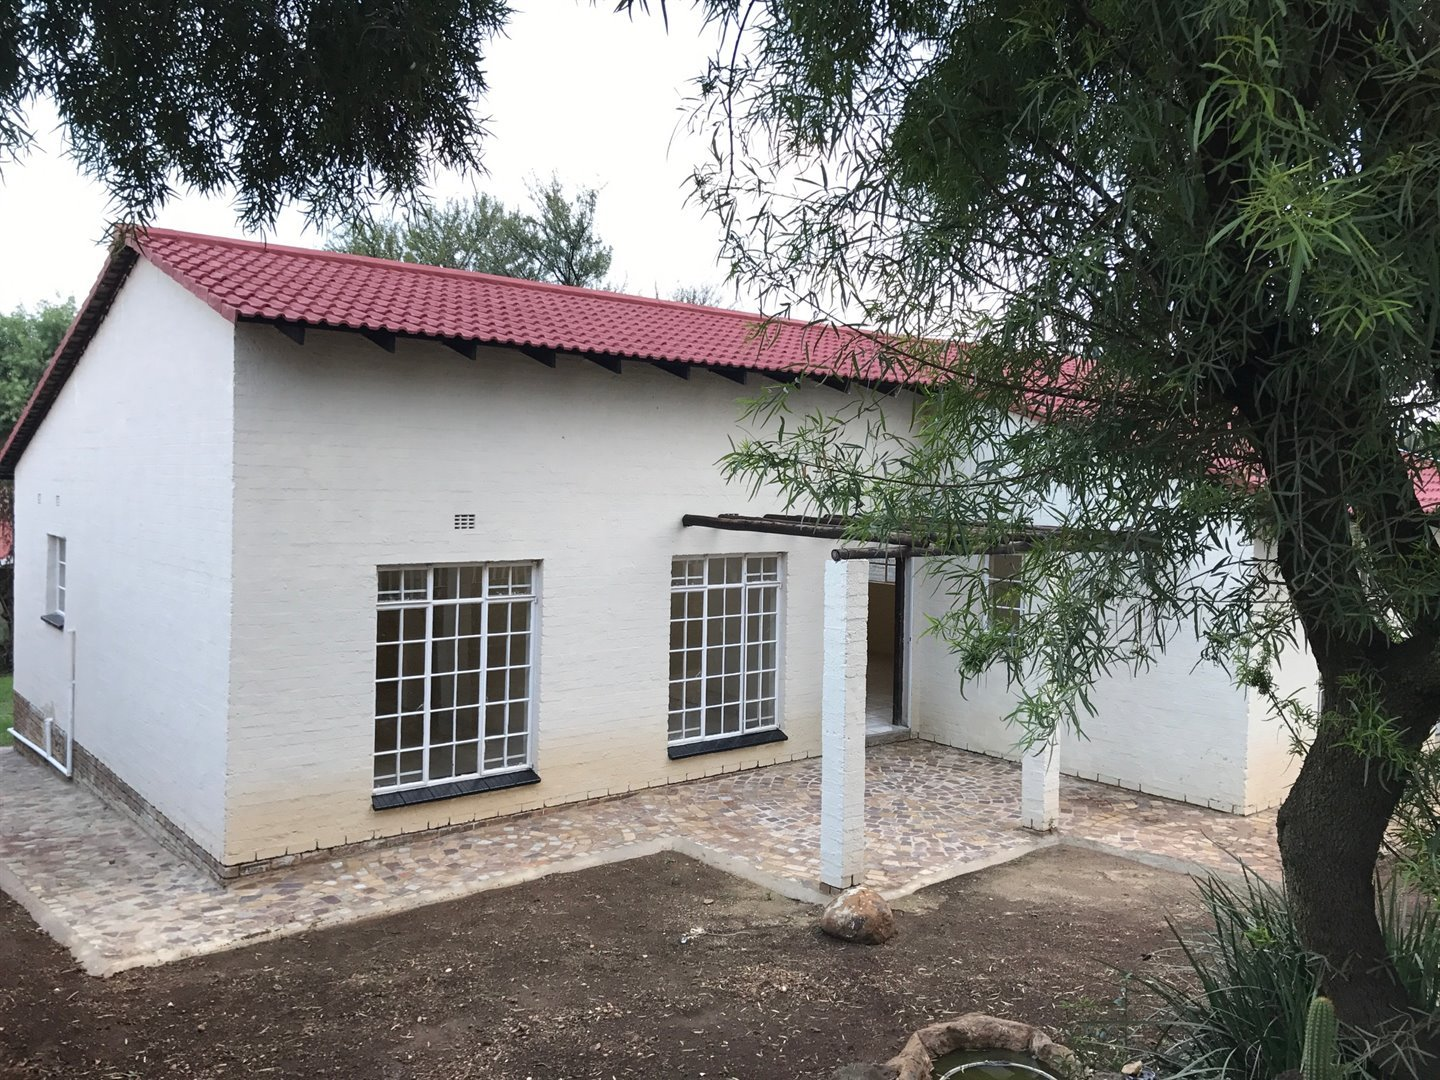 Johannesburg, Suideroord Property  | Houses For Sale Suideroord, Suideroord, House 3 bedrooms property for sale Price:1,195,000